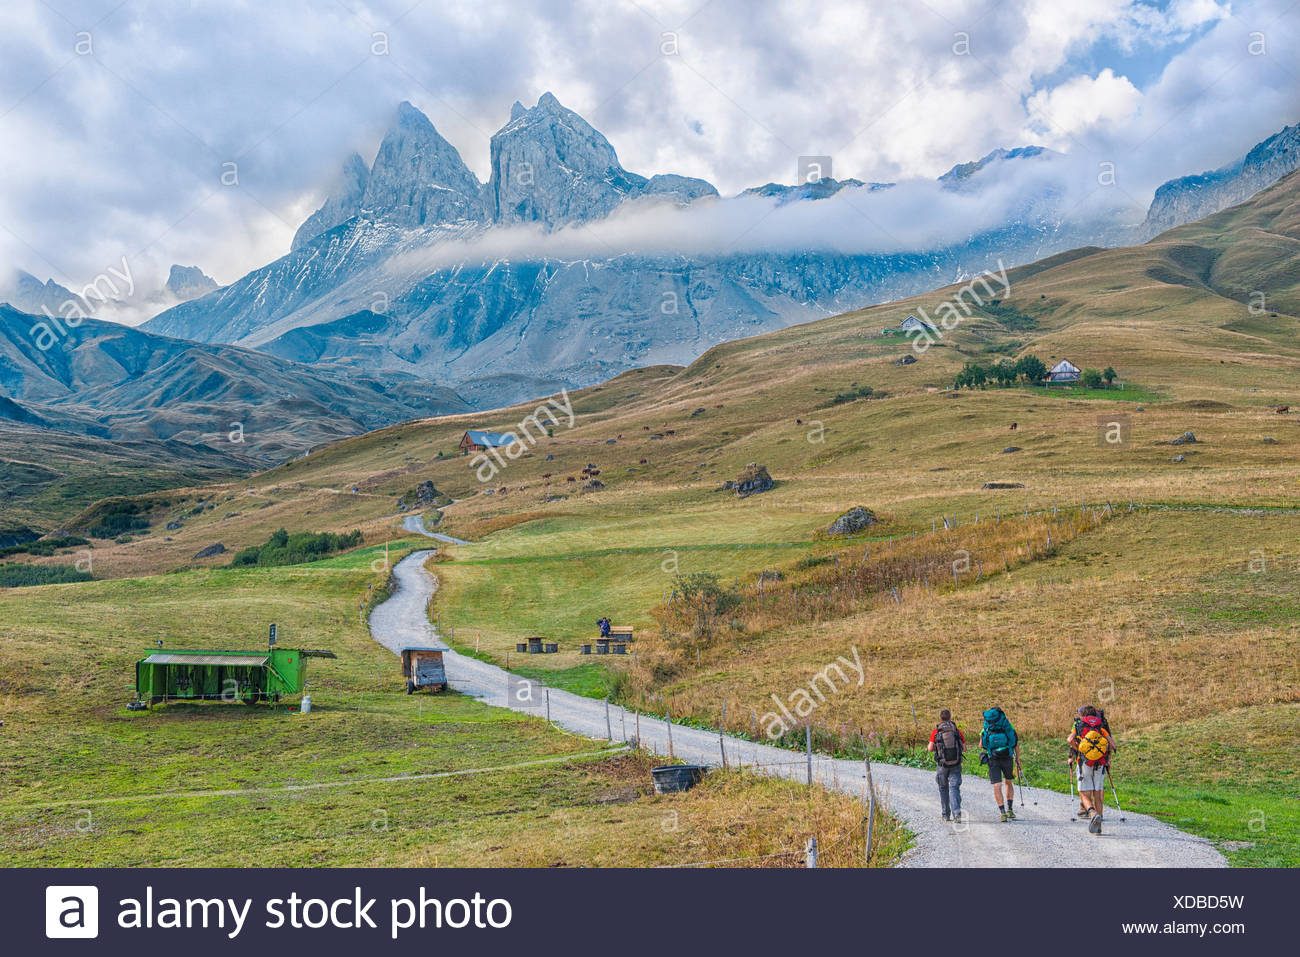 Hikers in front of the Aiguille d'Arves, Ecrins, Savoie, France - Stock Image